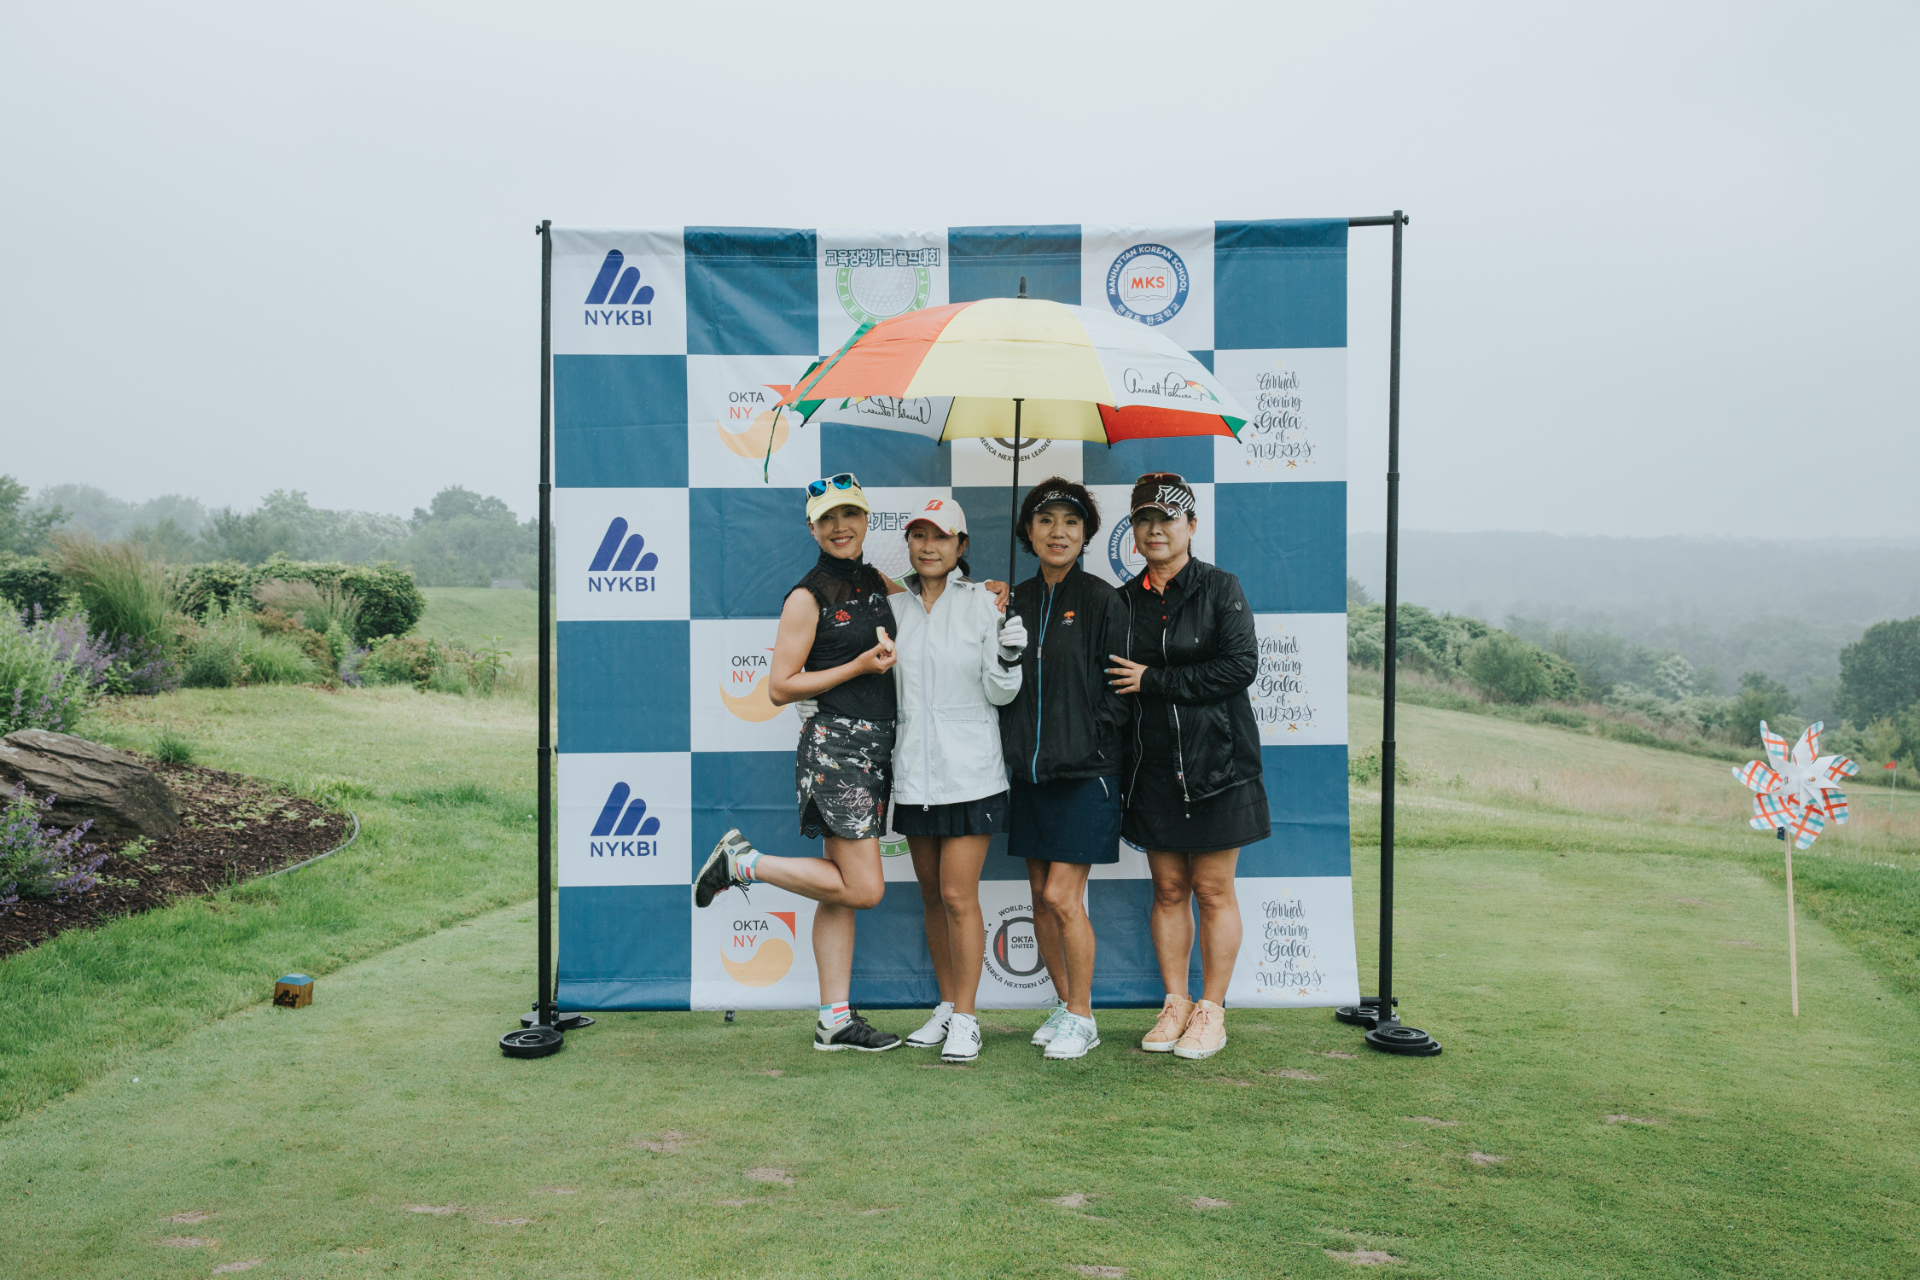 https://nykbi.com/new/wp-content/uploads/2019/07/190619-Scholarship-Fundraising-Golf-Tournament-019.jpg